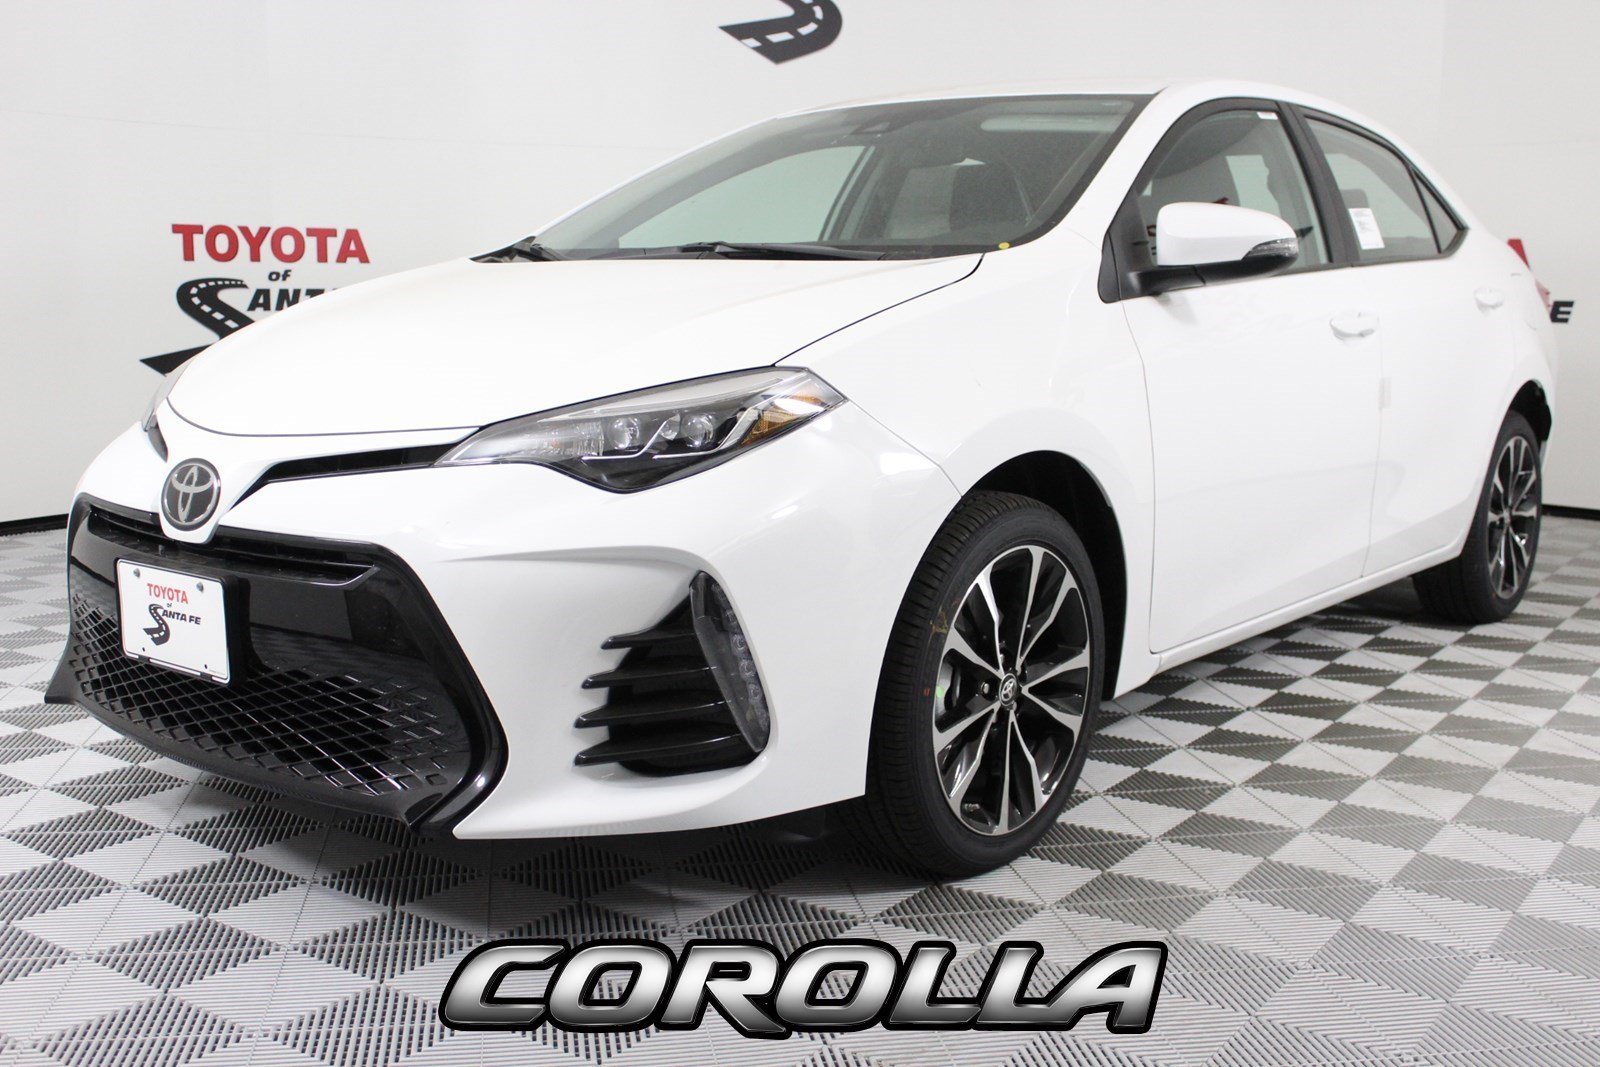 New 2019 Toyota Corolla Se In Santa Fe Kc194294d Toyota Of Santa Fe